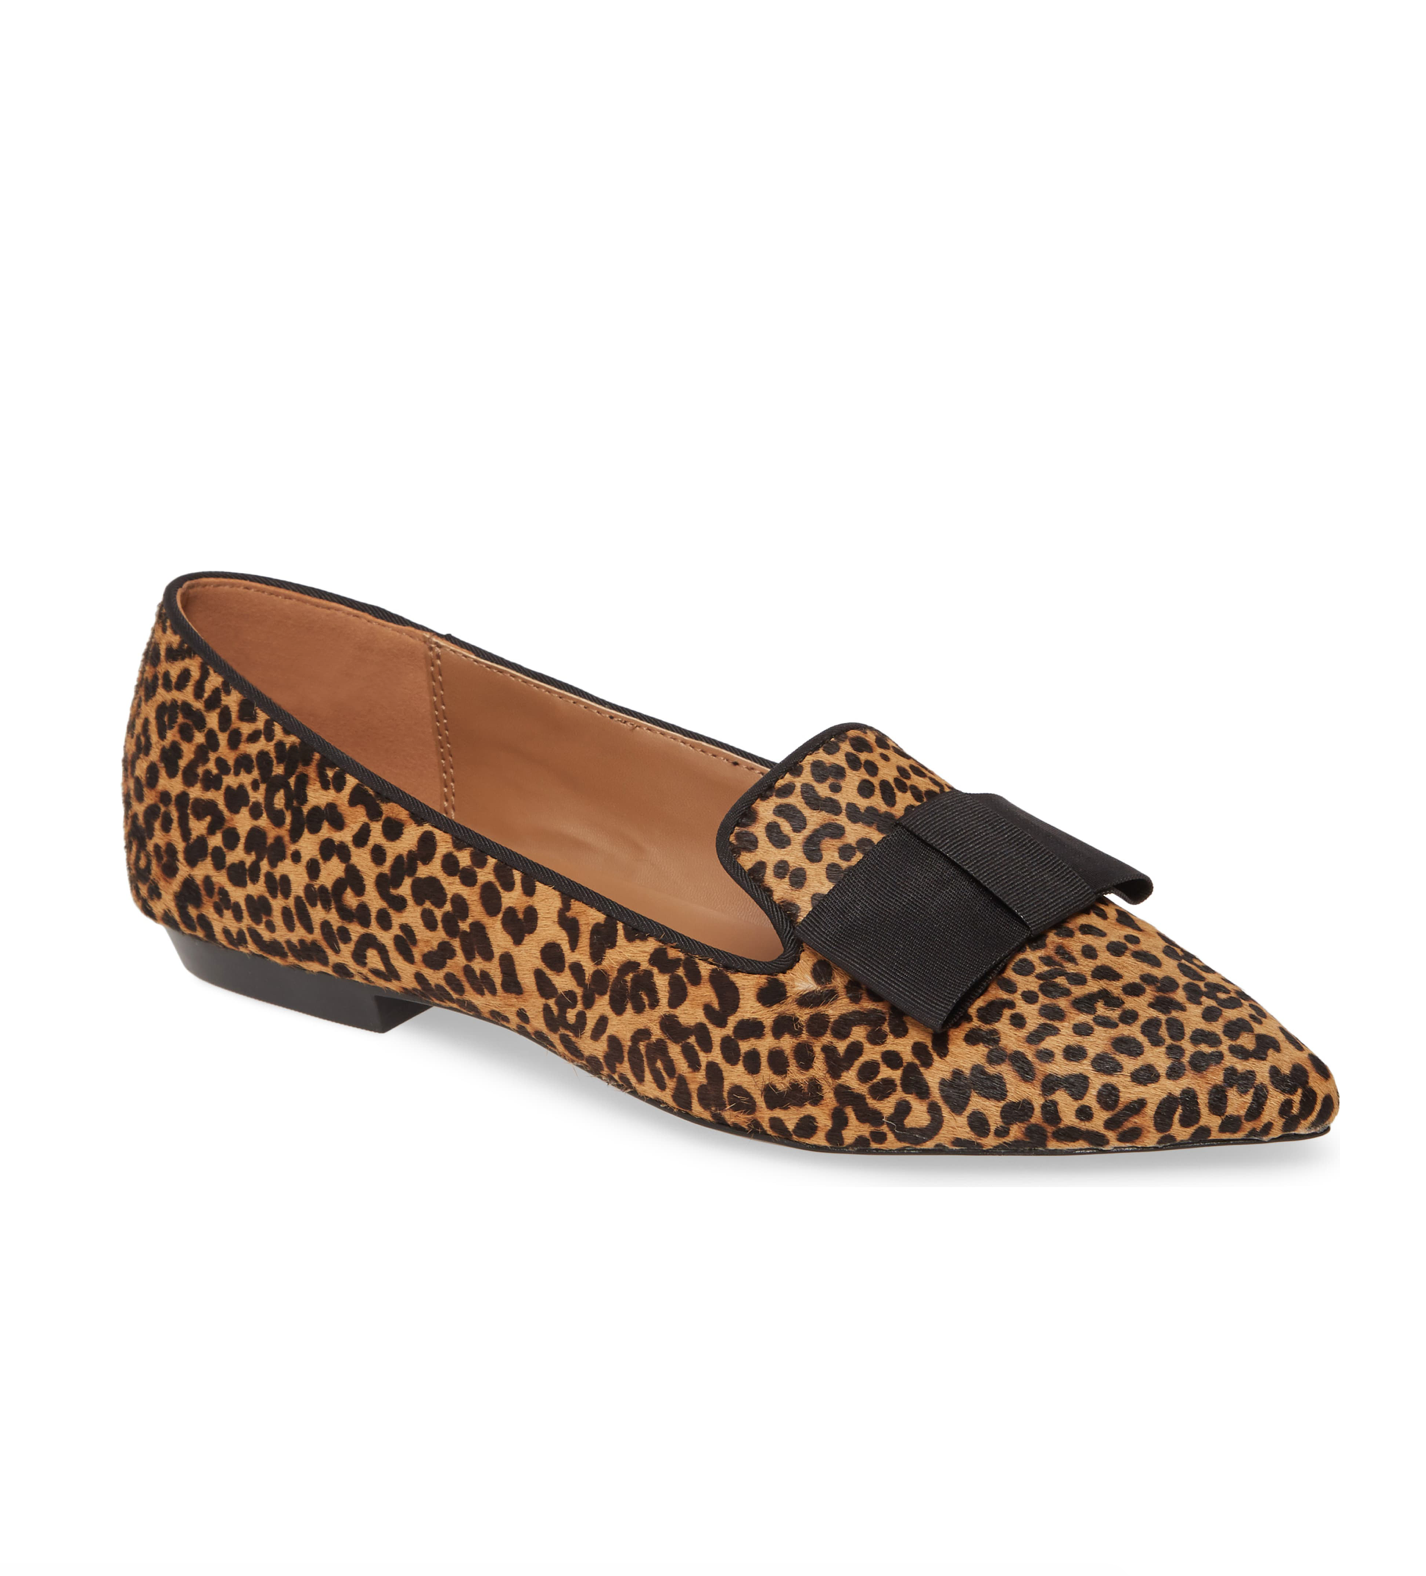 Leopard Print Pointed Toe Loafers